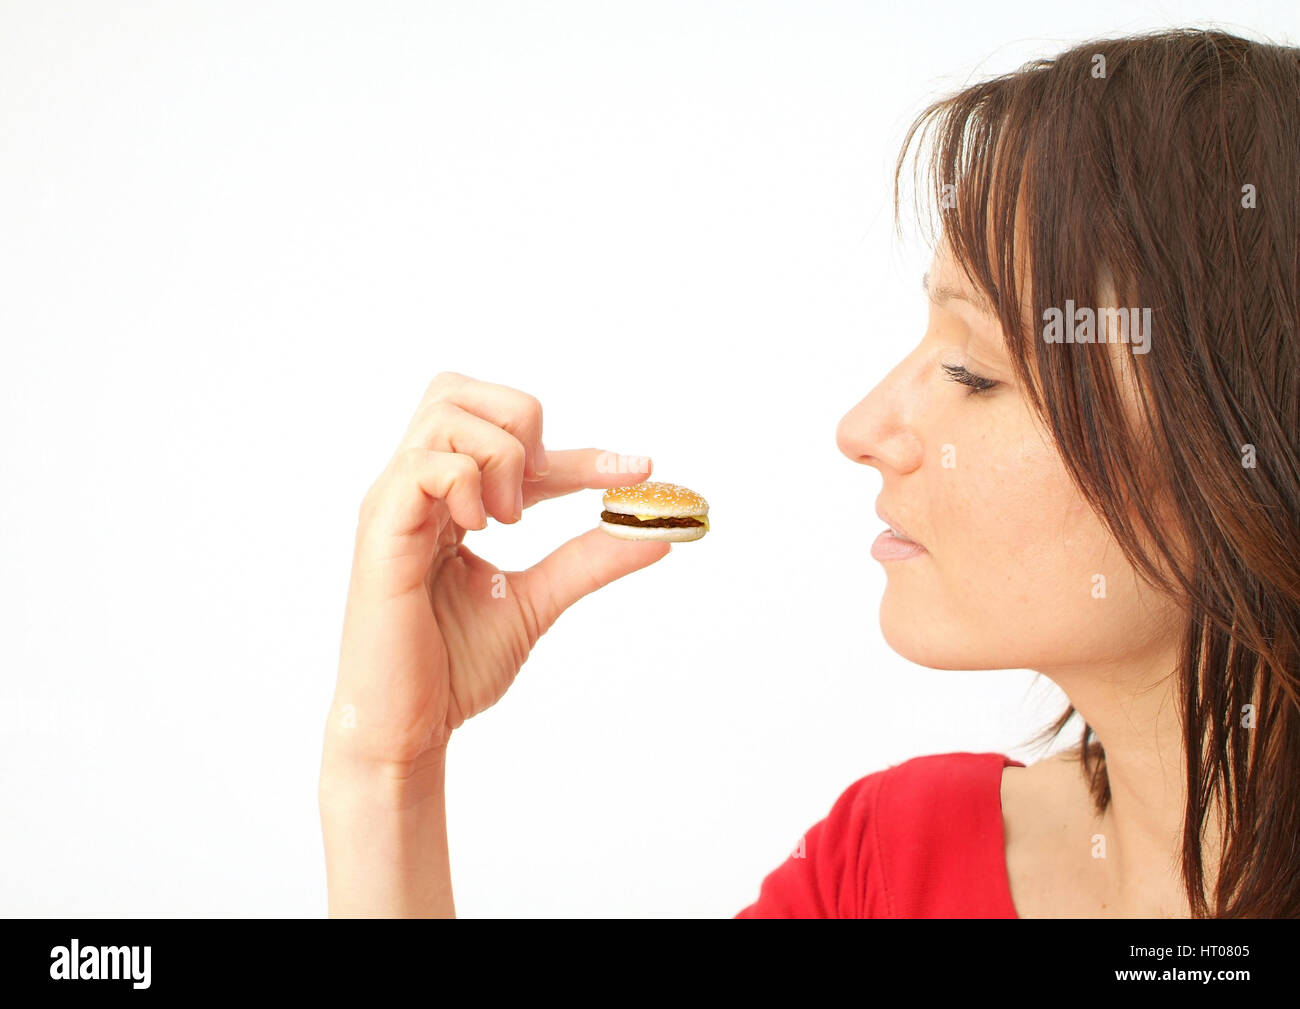 Symbolbild FdH, Frau mit Miniatur-Burger in der Hand - symbolic for Eat the Half, woman with miniature burger - Stock Image